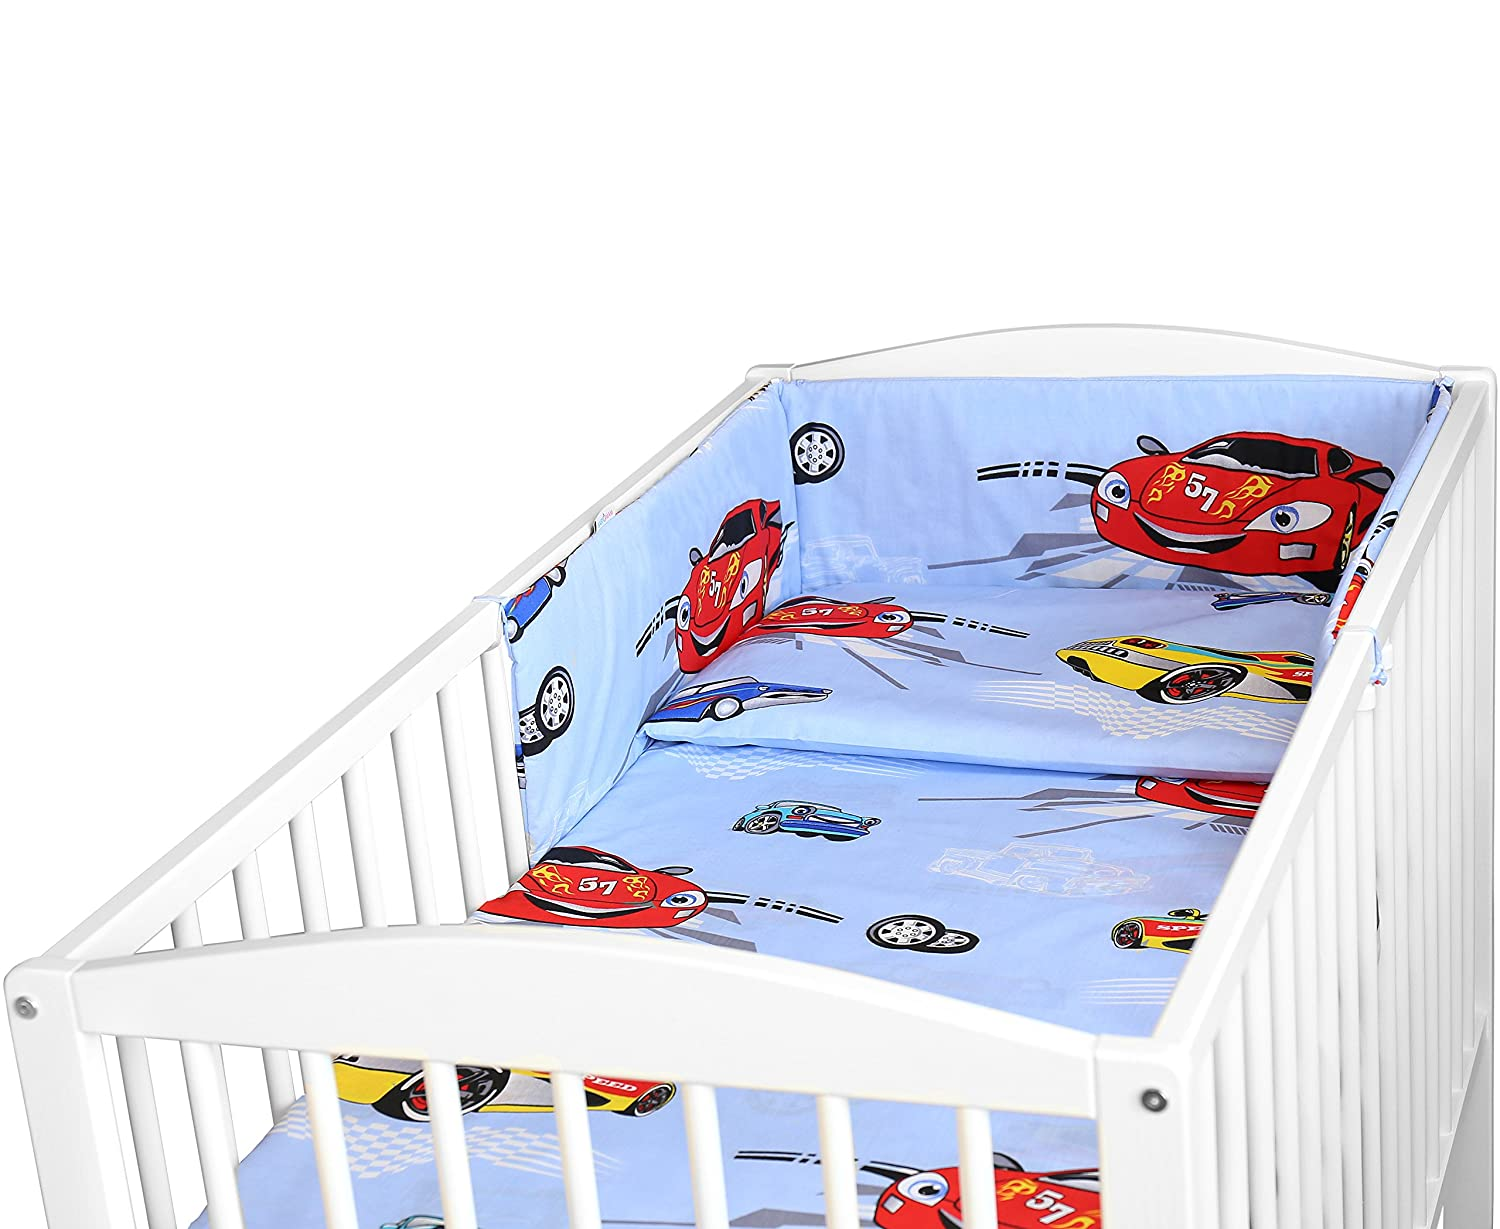 BABY BEDDING SET 3PCS COT BED SIZE PILLOW DUVET COVER BUMPER 140x70CM (BOATS) Babymam